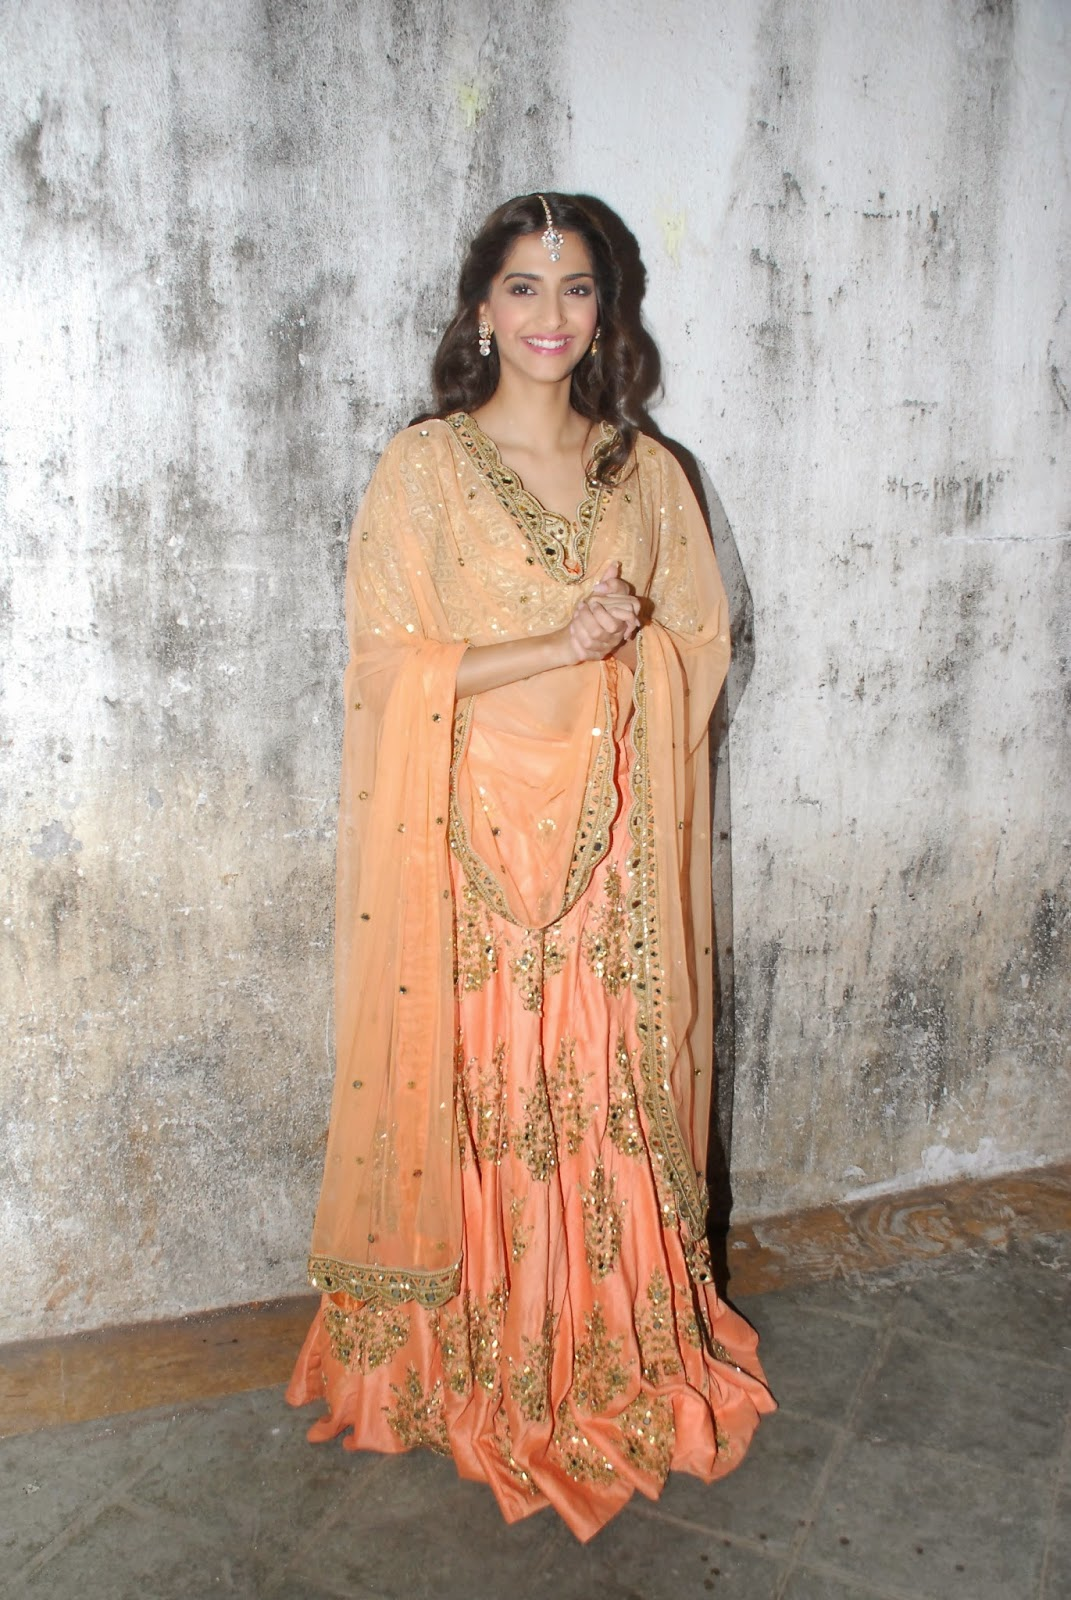 Bollywood Hot Actress Sonam Kapoor Long Hair In Transparent Orange Ghagra Choli